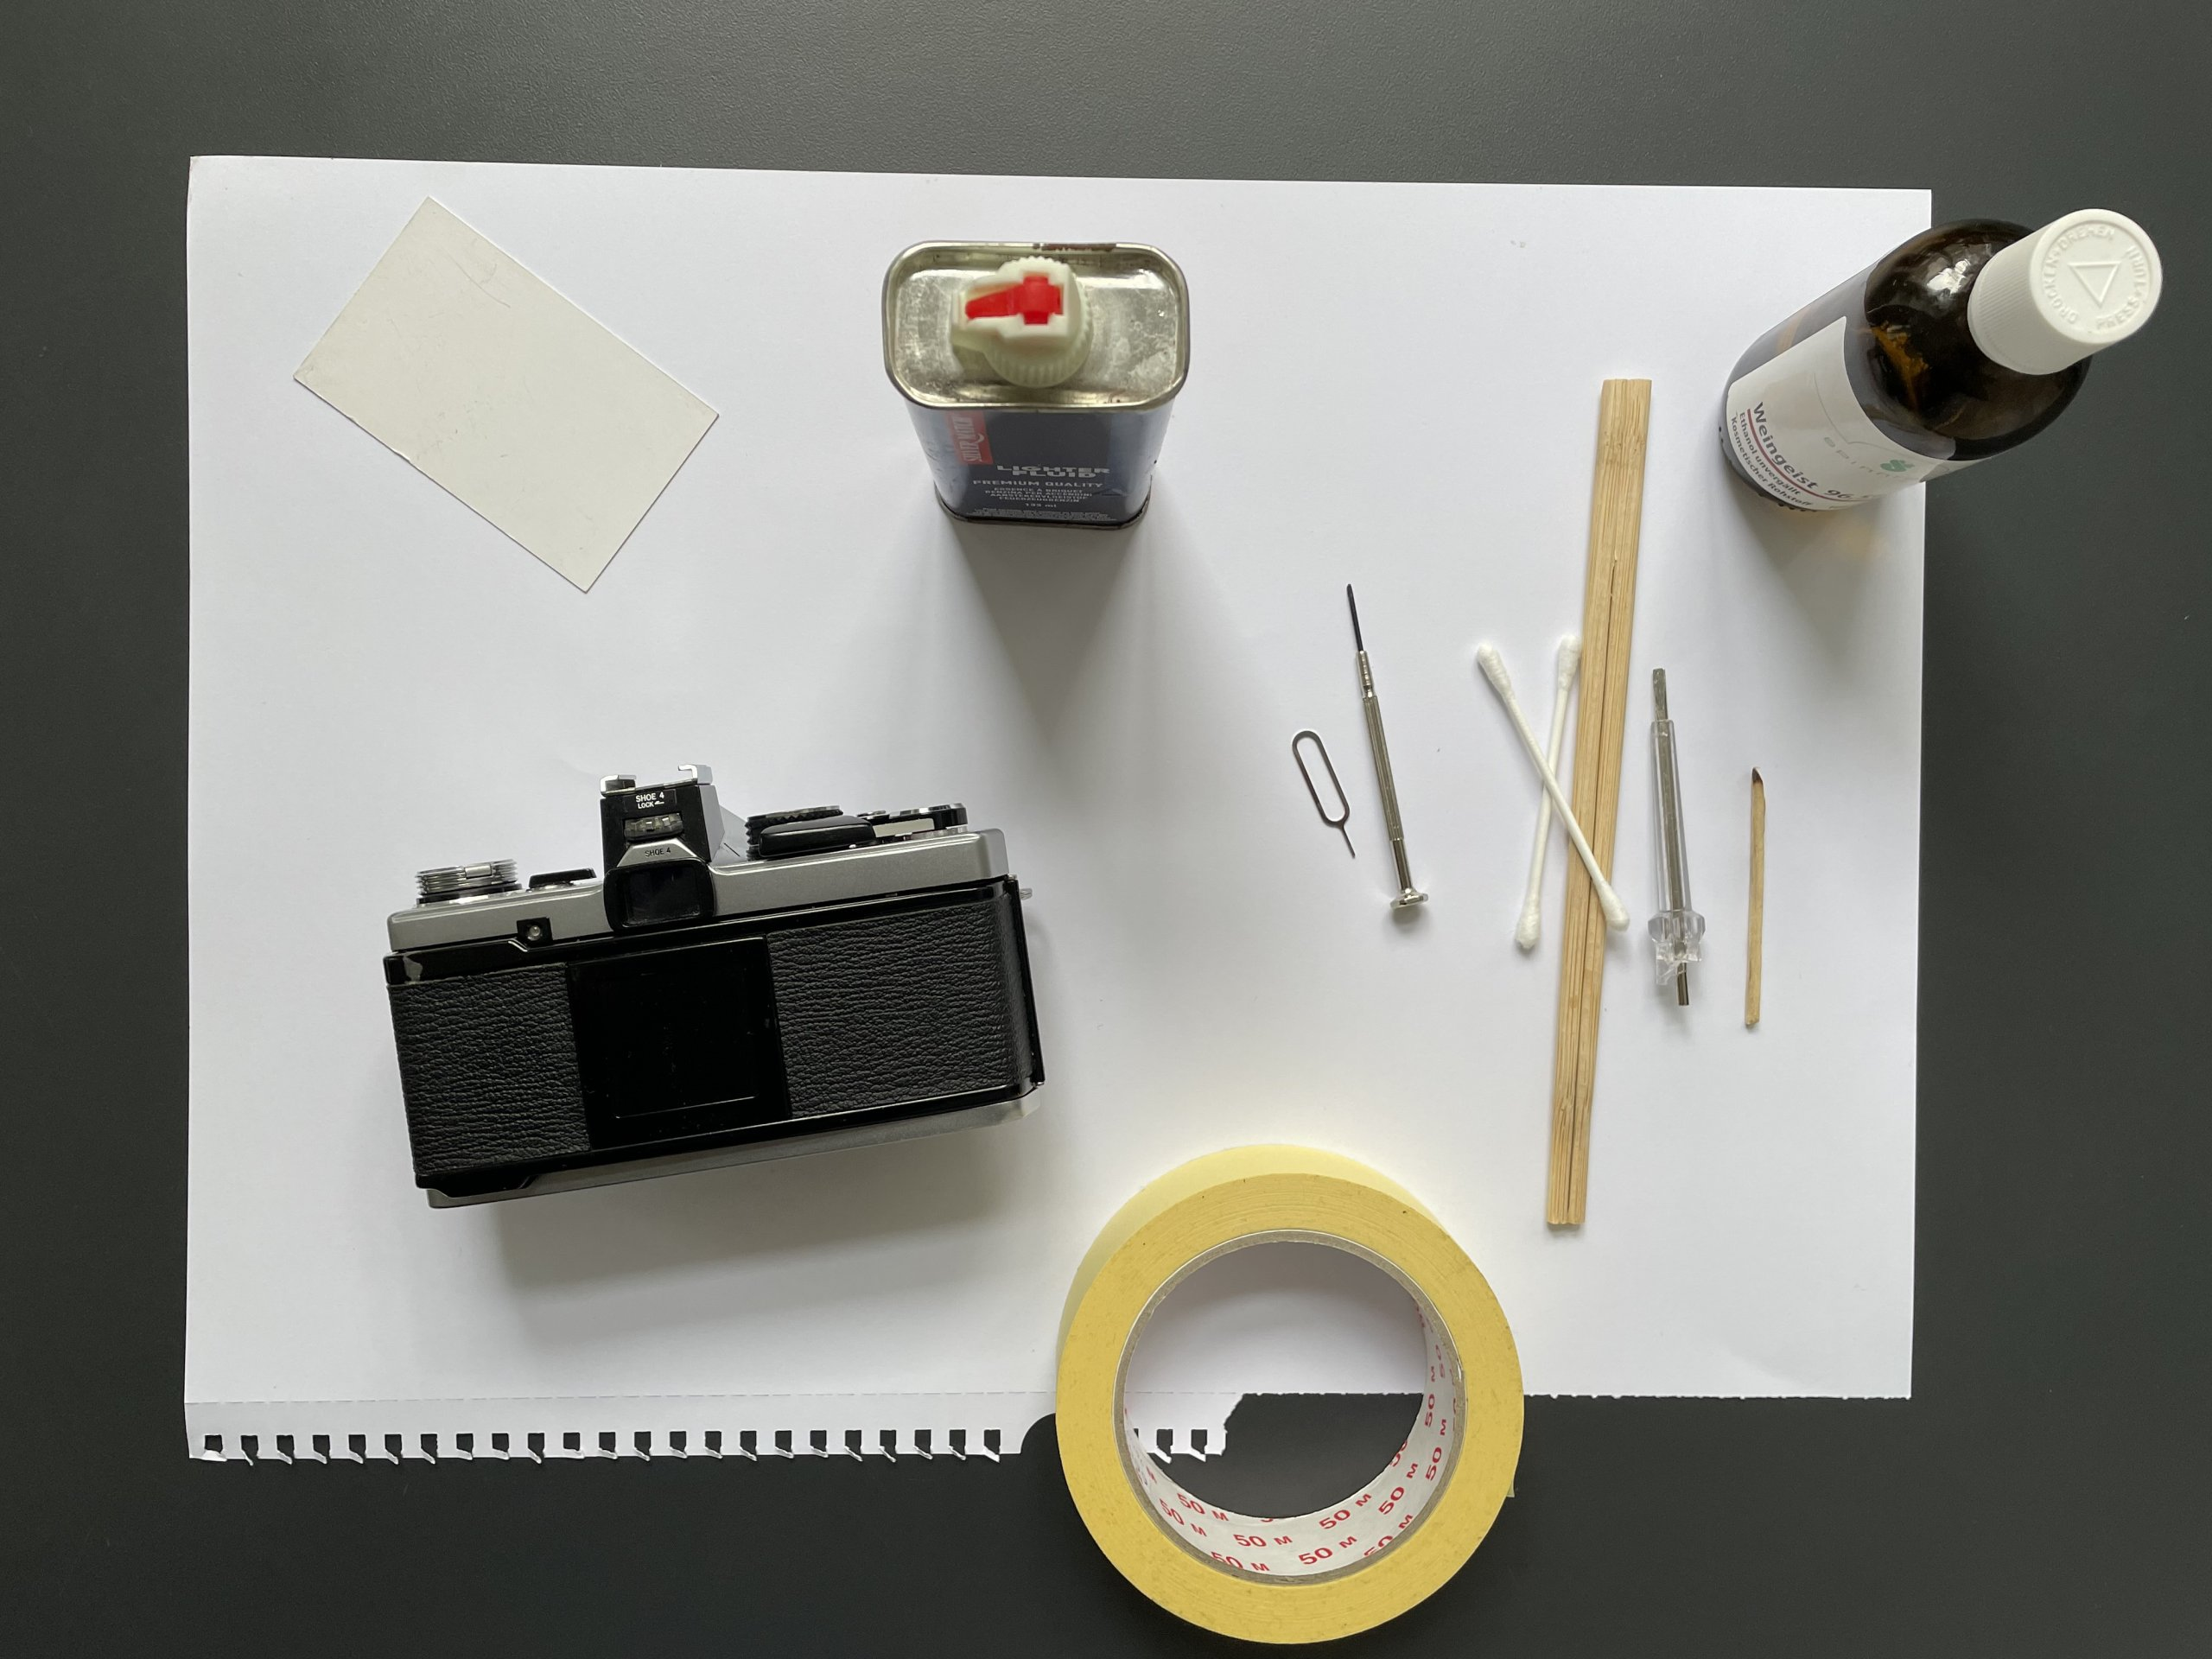 Camera, lighter fluid, and tools for removing foam, laid out on table